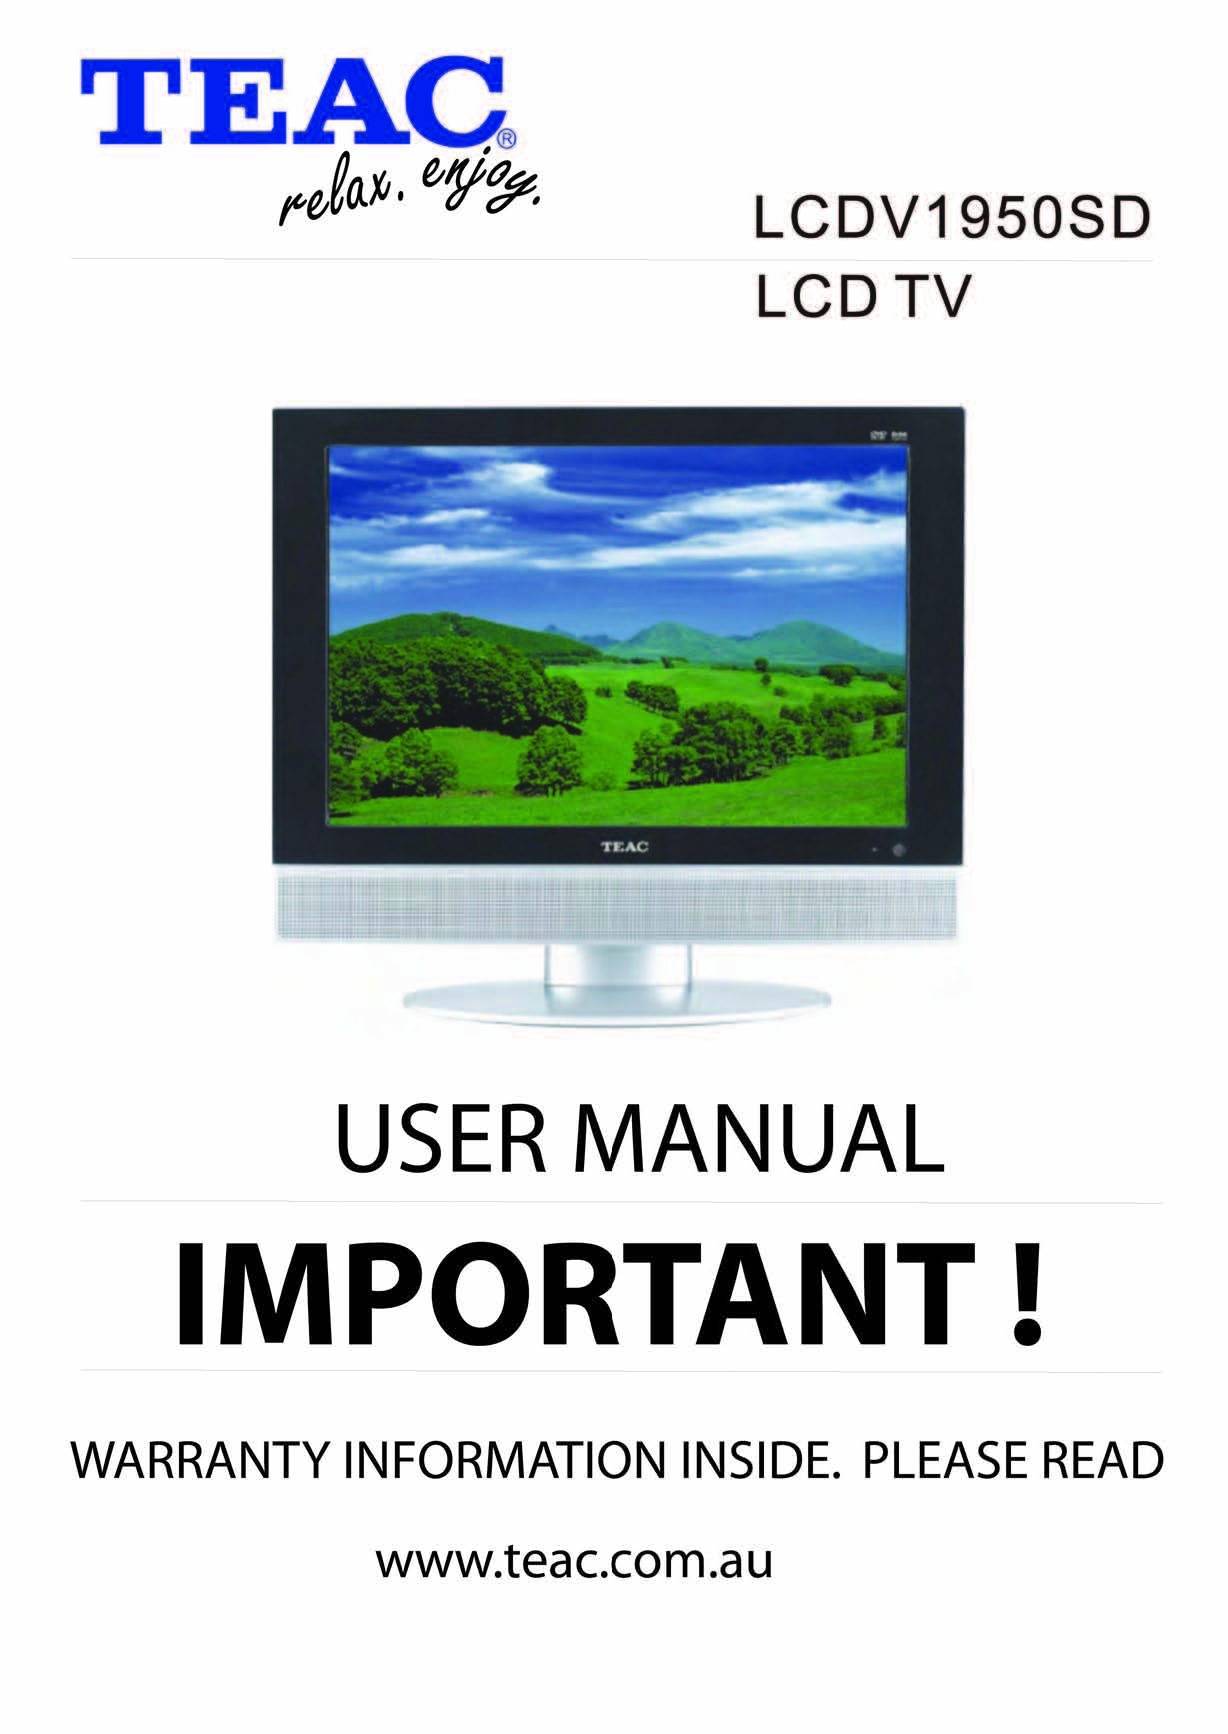 teac lcdv1950sd instruction manual store809 rh store809 com teac 12v tv manual teac tv manual tuning